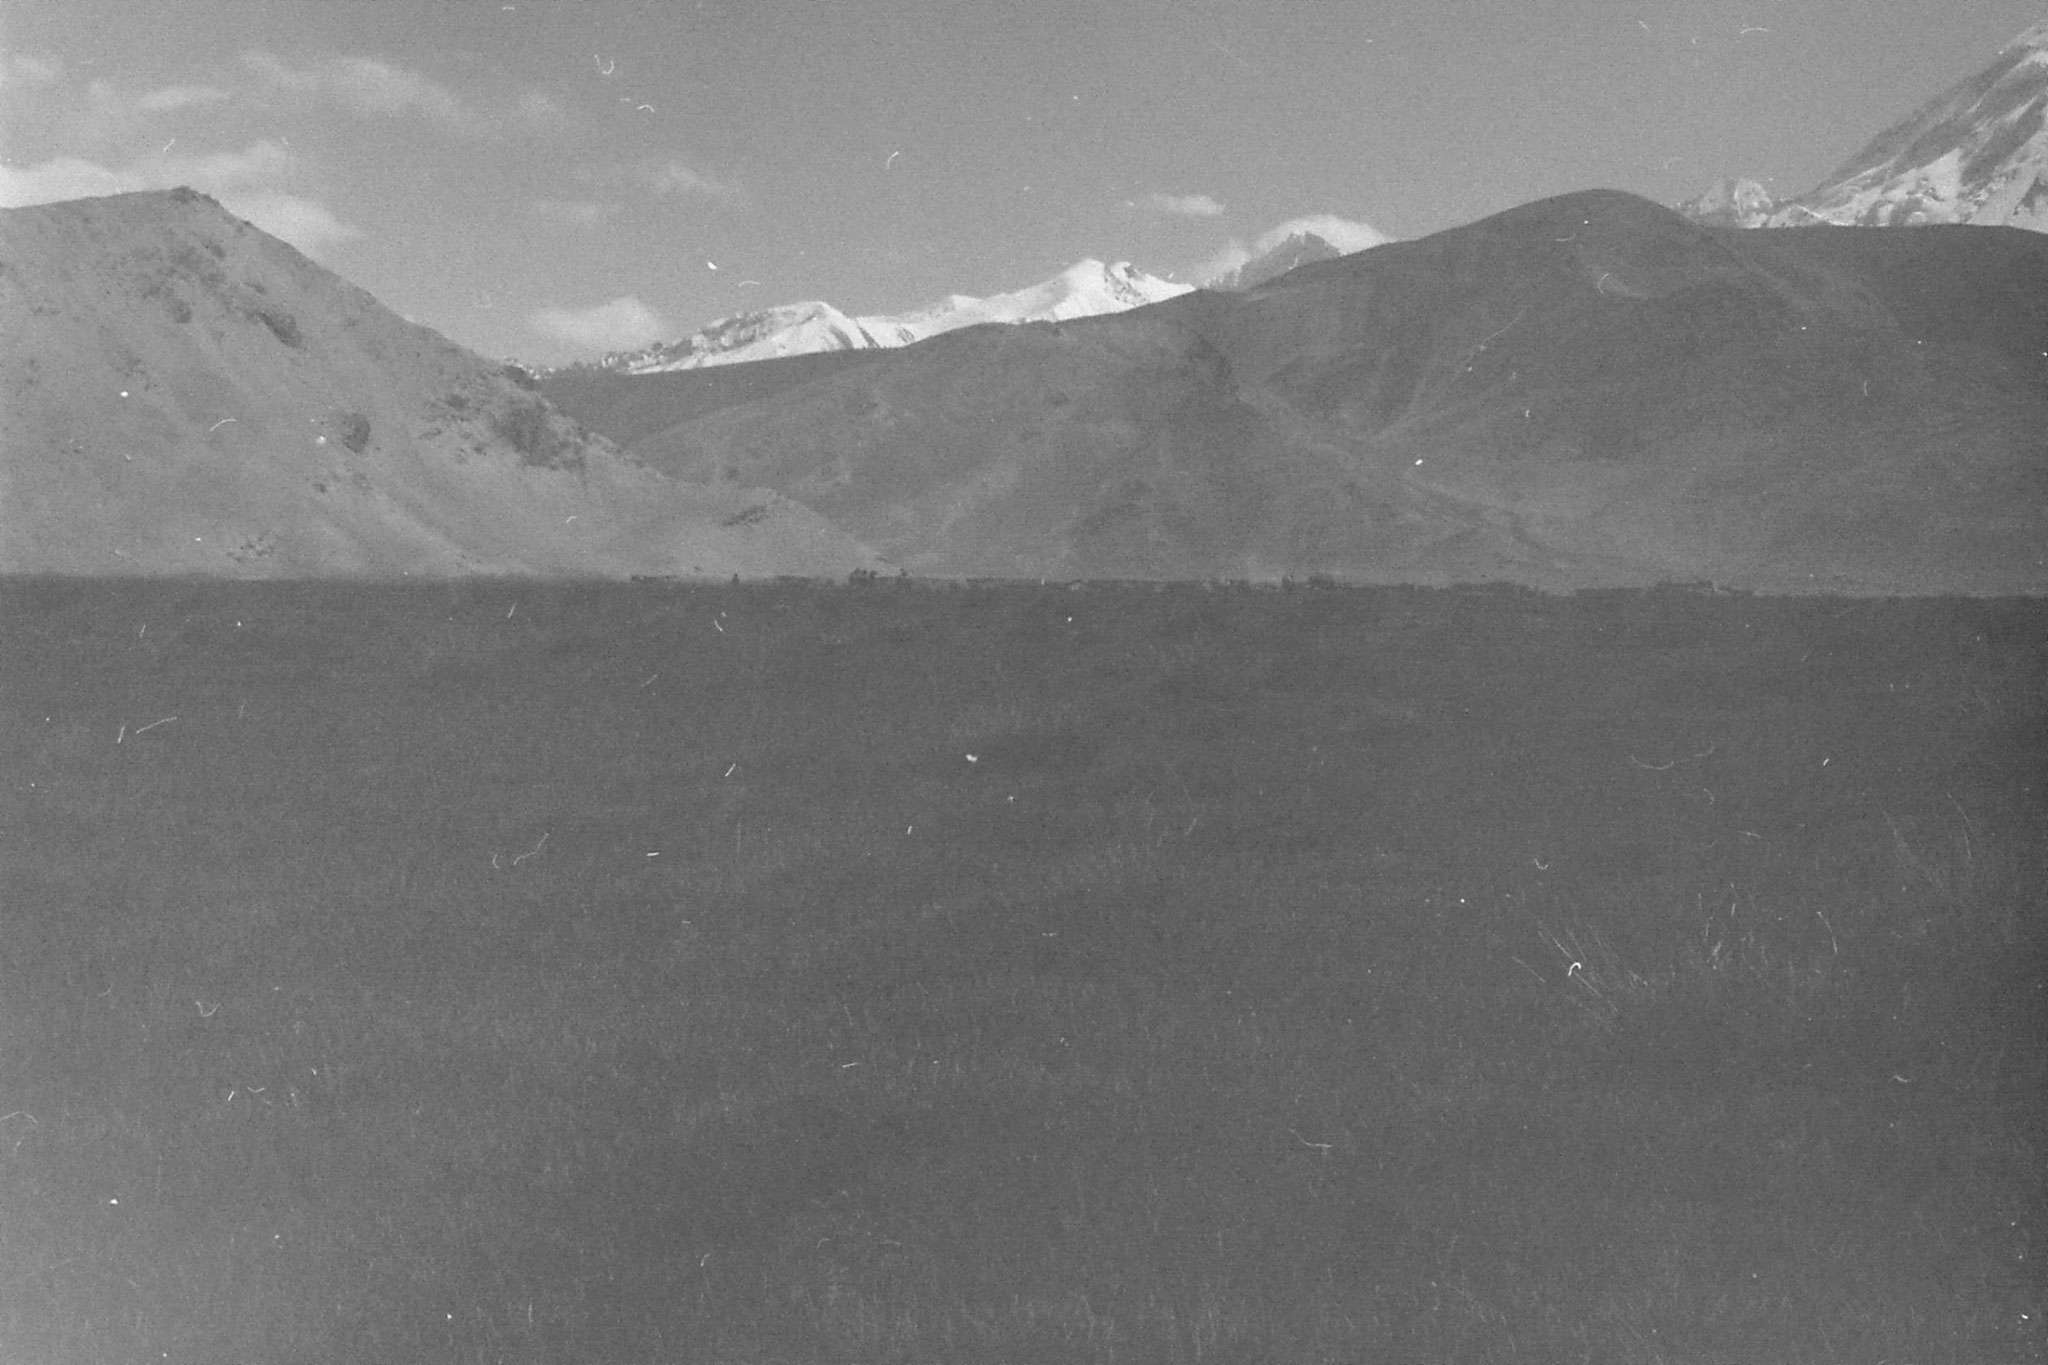 10/9/1989: 12: Lake Karakul